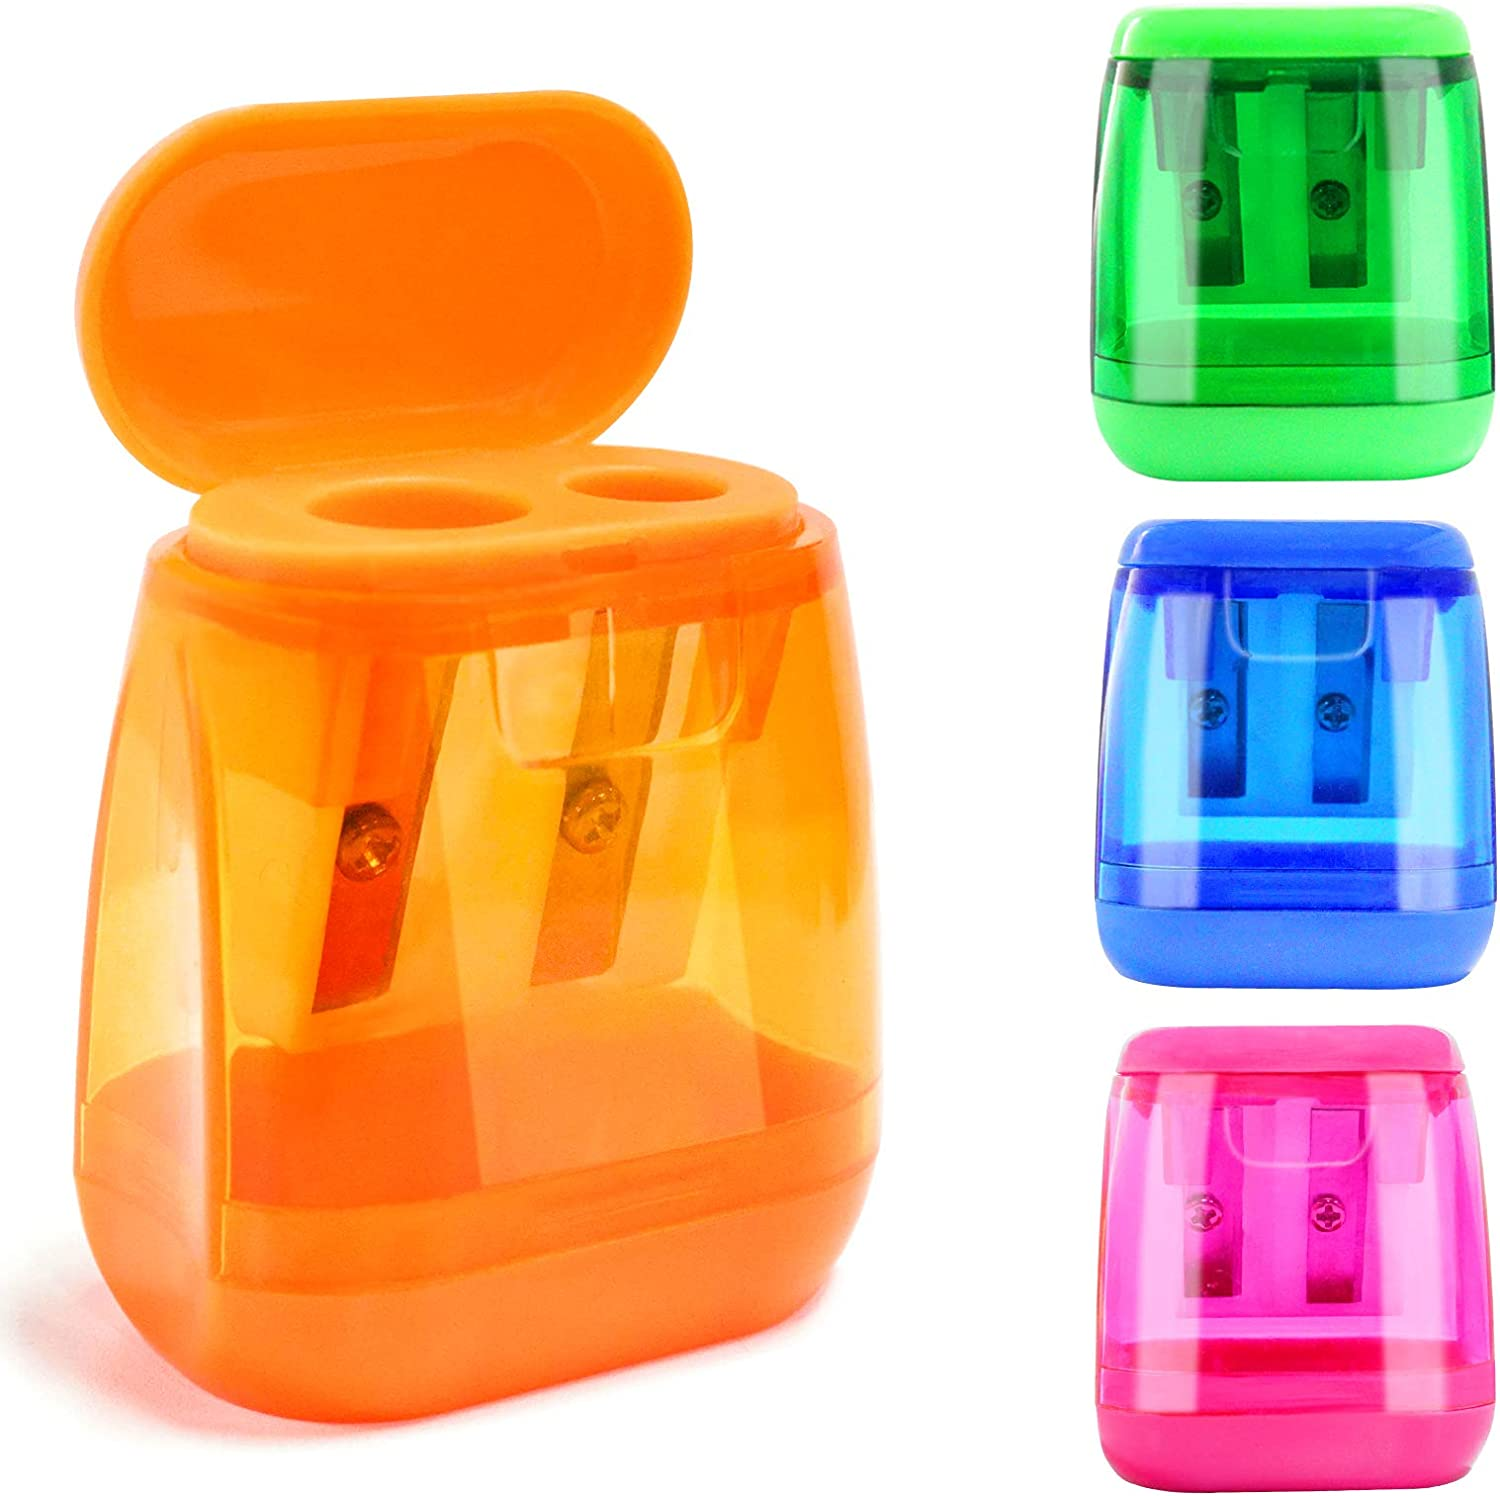 Pencil Sharpener Manual for Kids Double Holes Colored Handheld Pencil Sharpeners with Lid Portable for School Home Class Office 4 Pcs 4 Colors